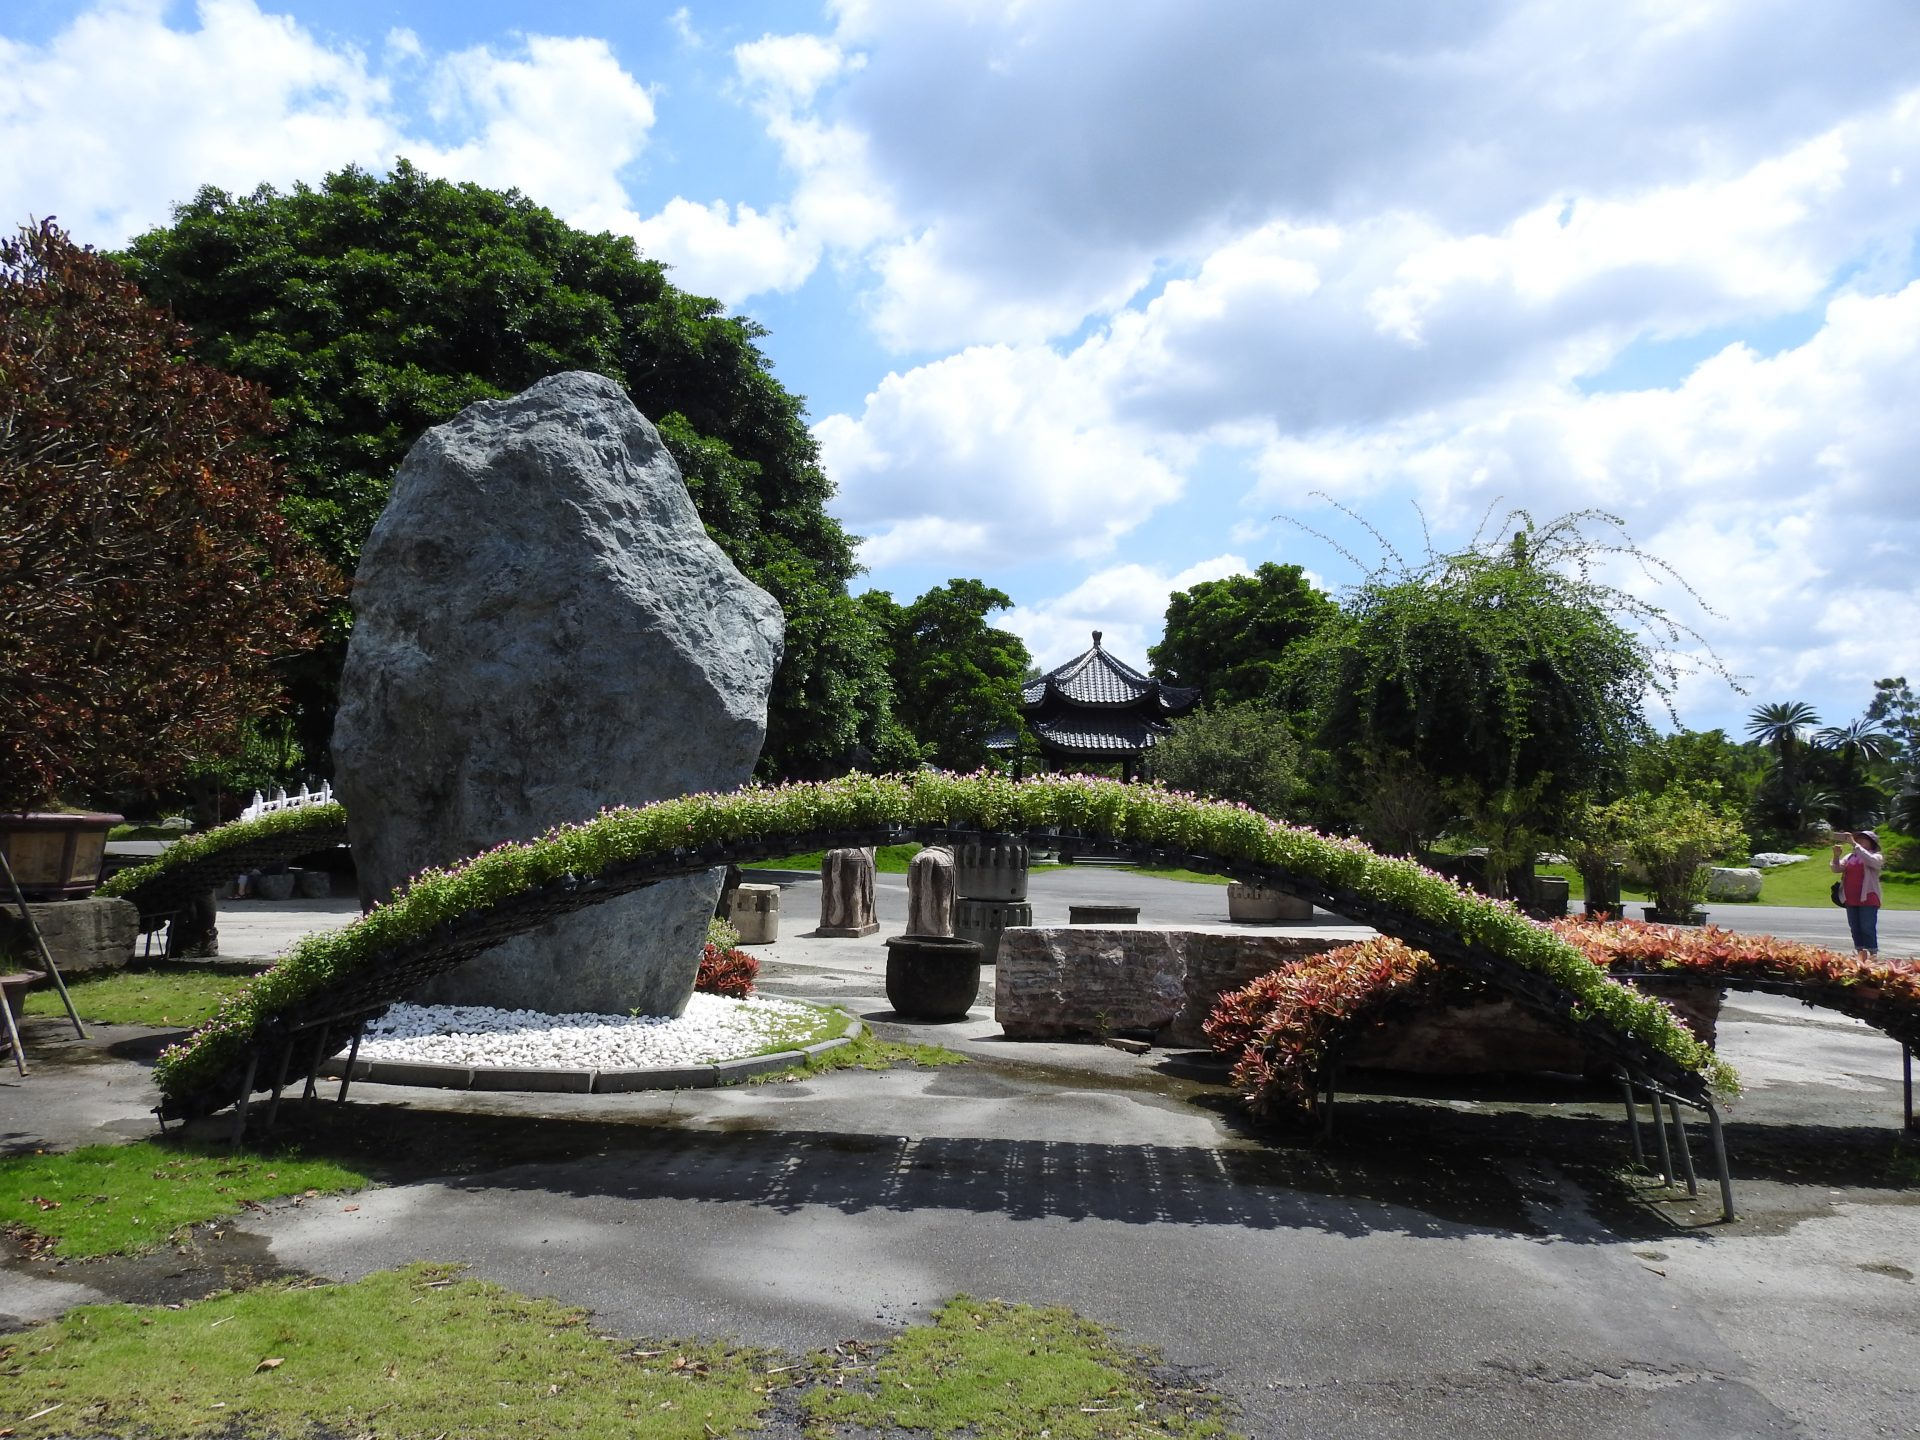 Mann Ying Art Garden has pavilions, terraces, small bridges, flowing ponds, waterfalls, and rare stones, which make the garden full of grandeur and vitality. (Image: Billy Shyu/ Vision Times)